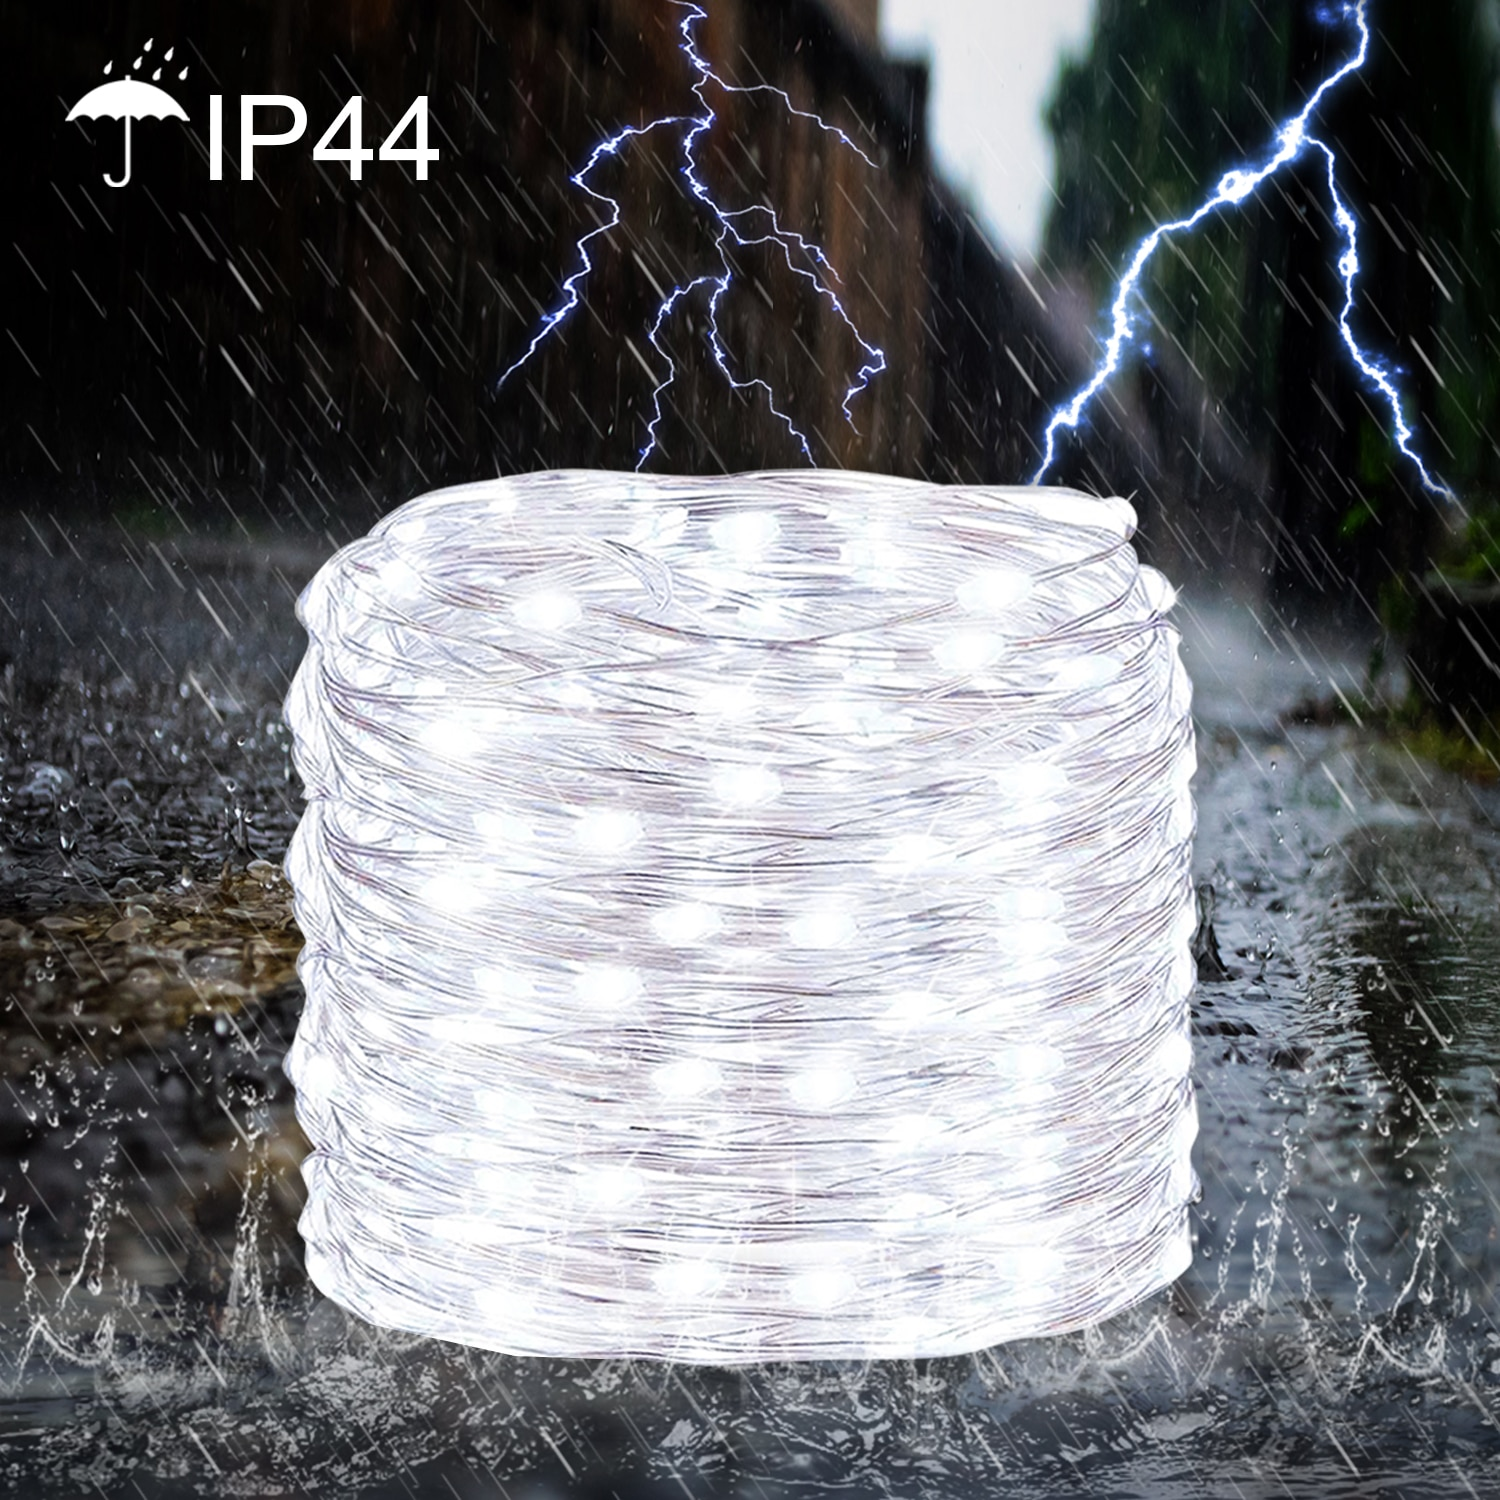 Hf1929d18c2e24de6a71c404e336ab5df2 - 50/100/200/330 LED Solar Light Outdoor Lamp String Lights For Holiday Christmas Party Waterproof Fairy Lights Garden Garland